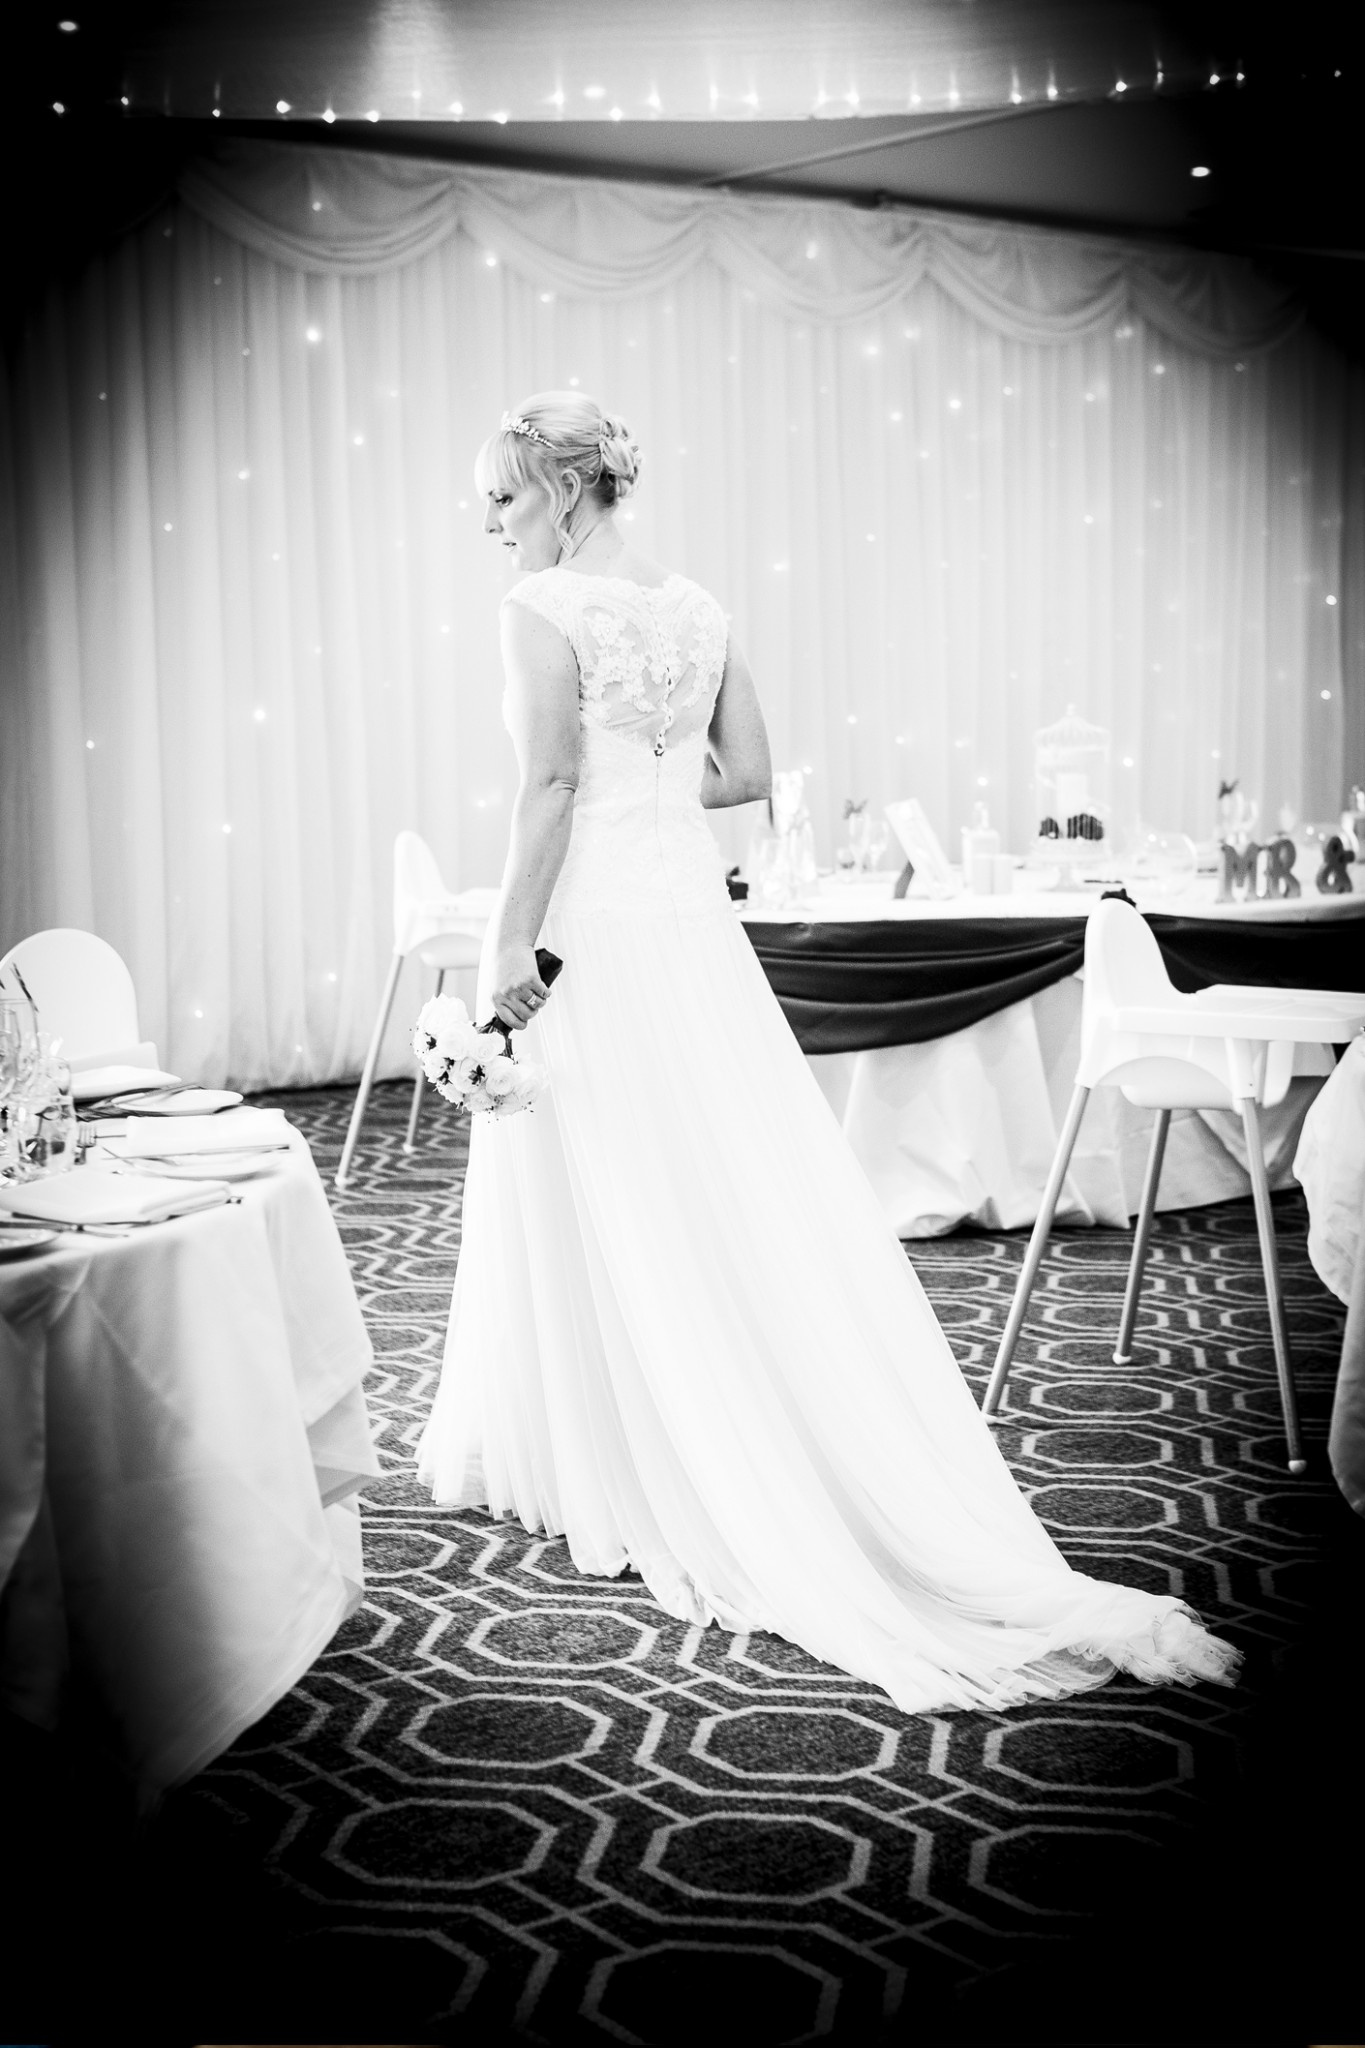 wedding-photography-of-the-bride-just-before-the-wedding-breakfast-at-cranage-hall